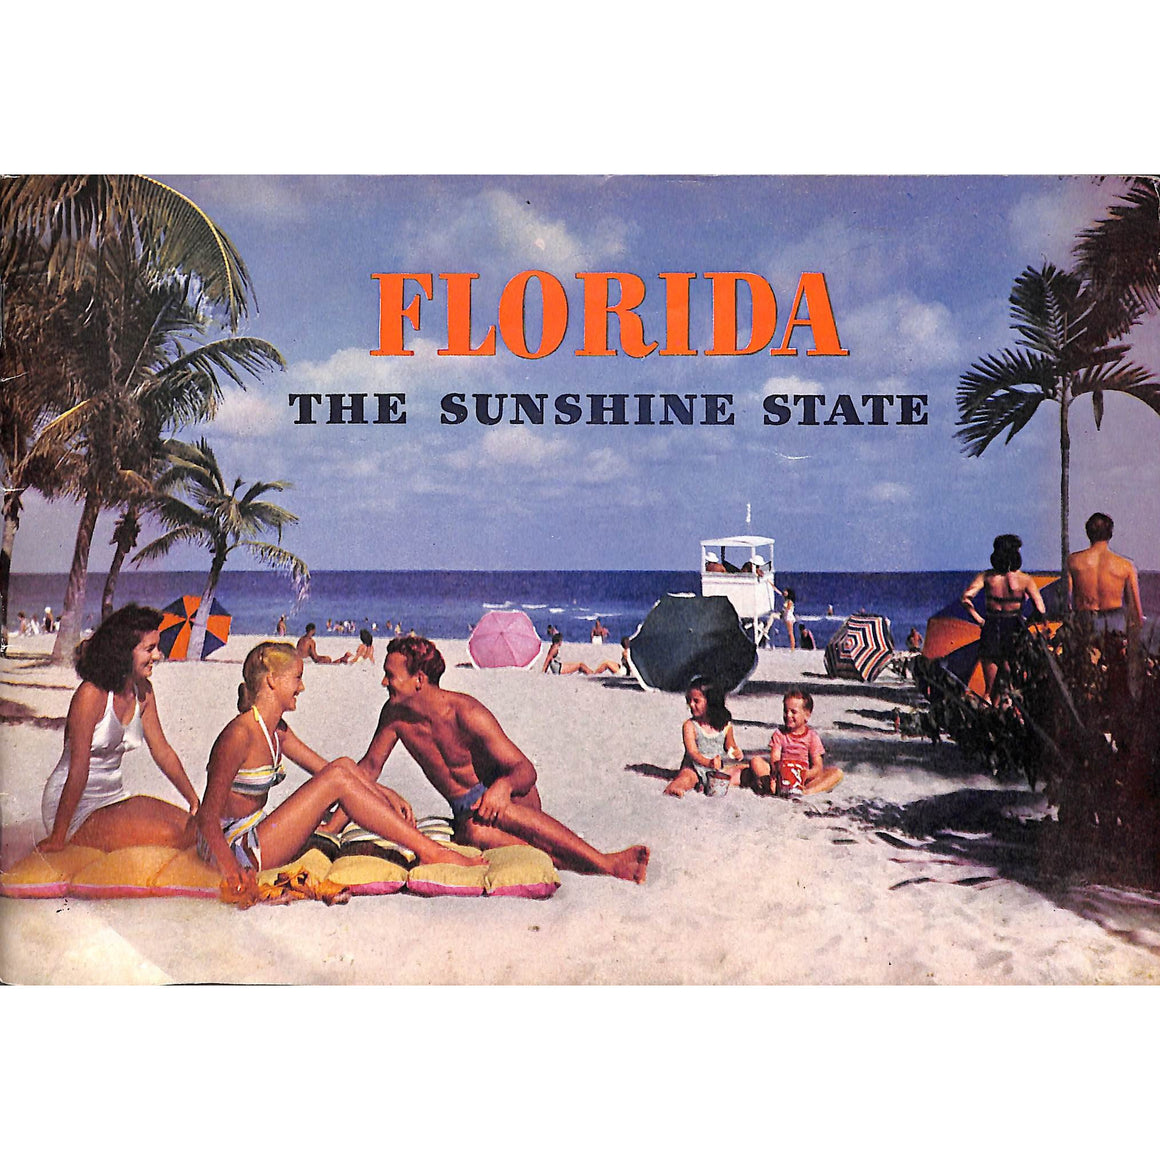 Florida: The Sunshine State